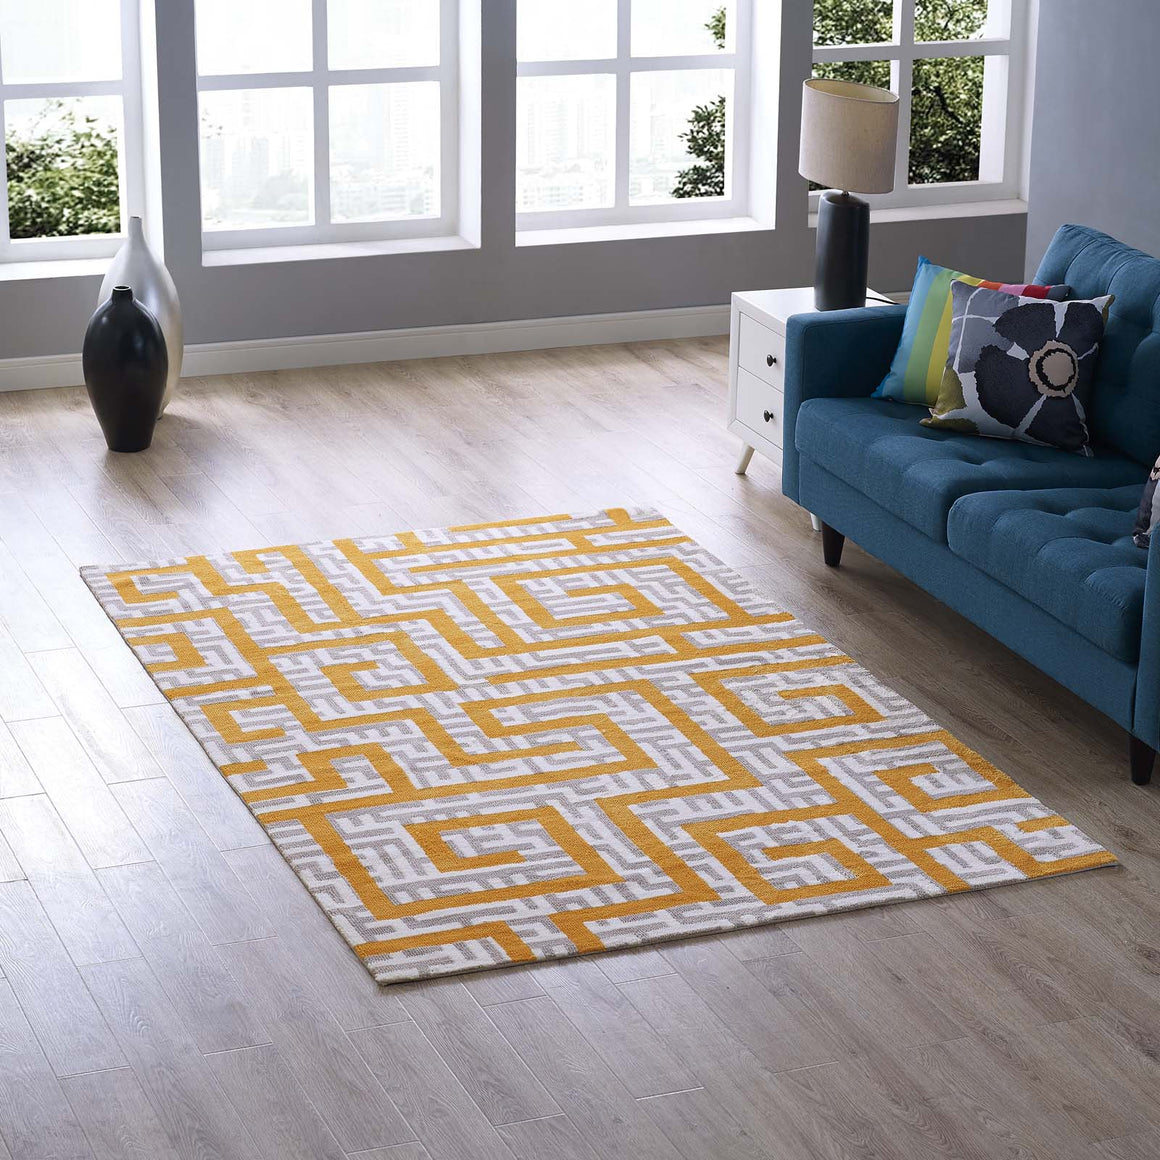 Nahia Geometric Maze 5x8 Area Rug Ivory, Light Gray and Banana Yellow